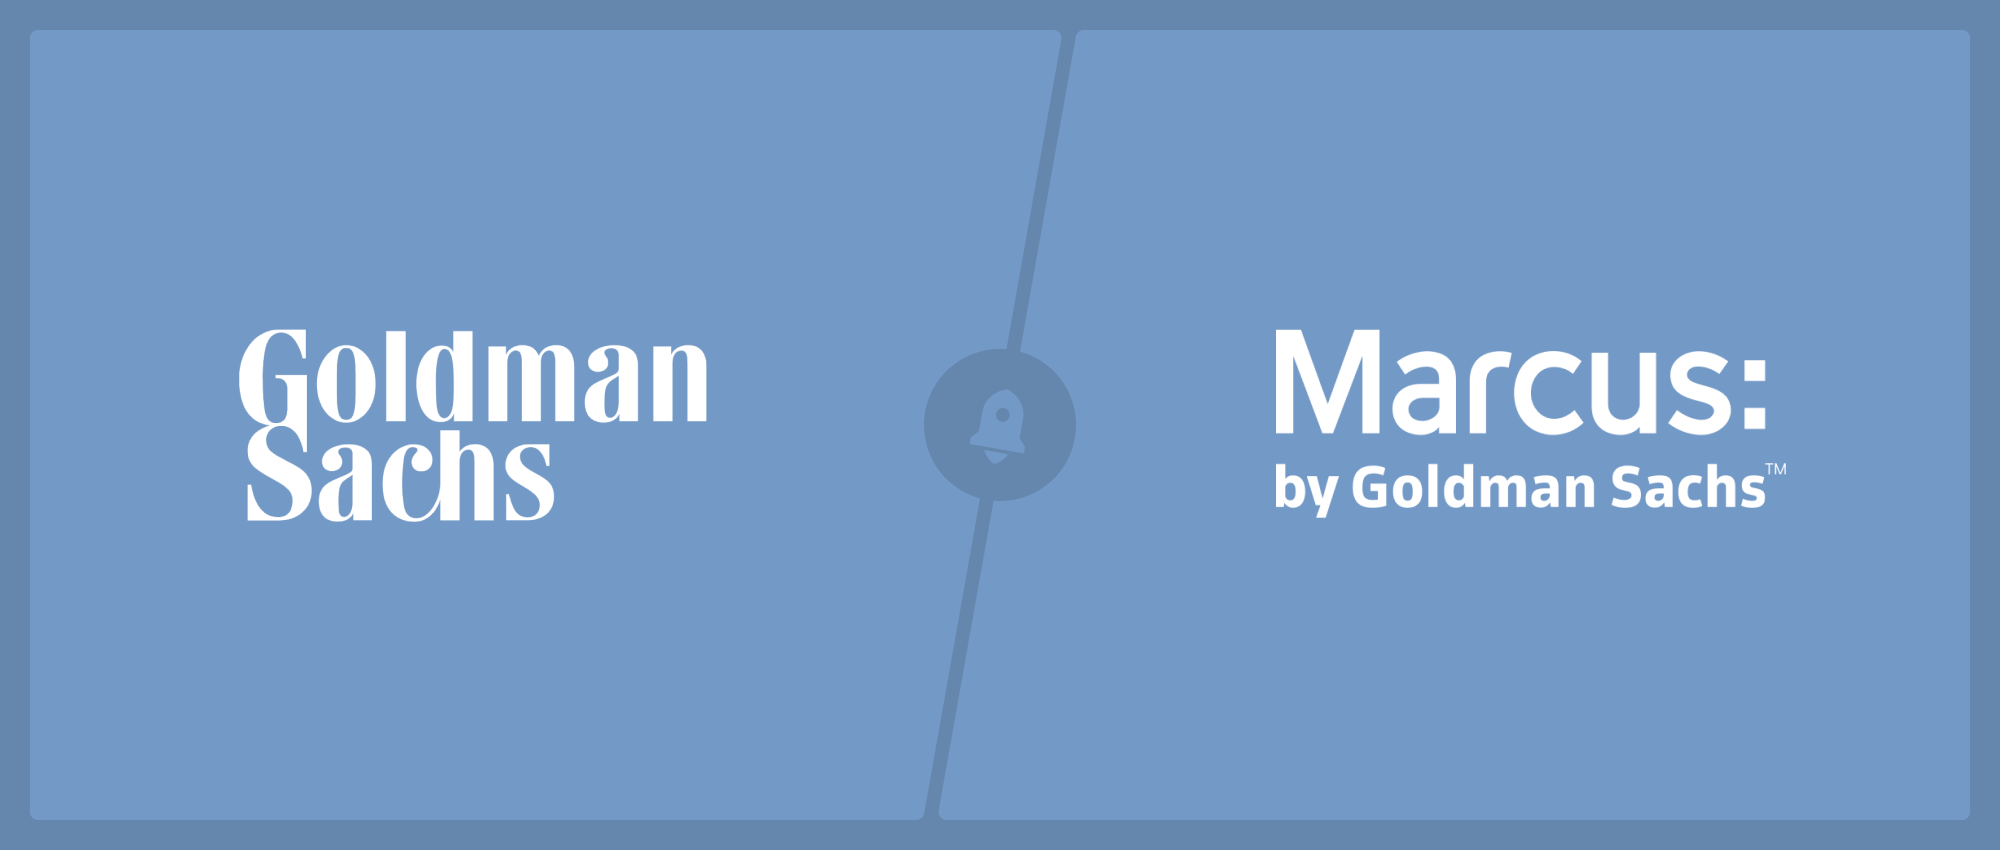 Marcus by Goldman Sachs: From B2B investments to online consumer banking